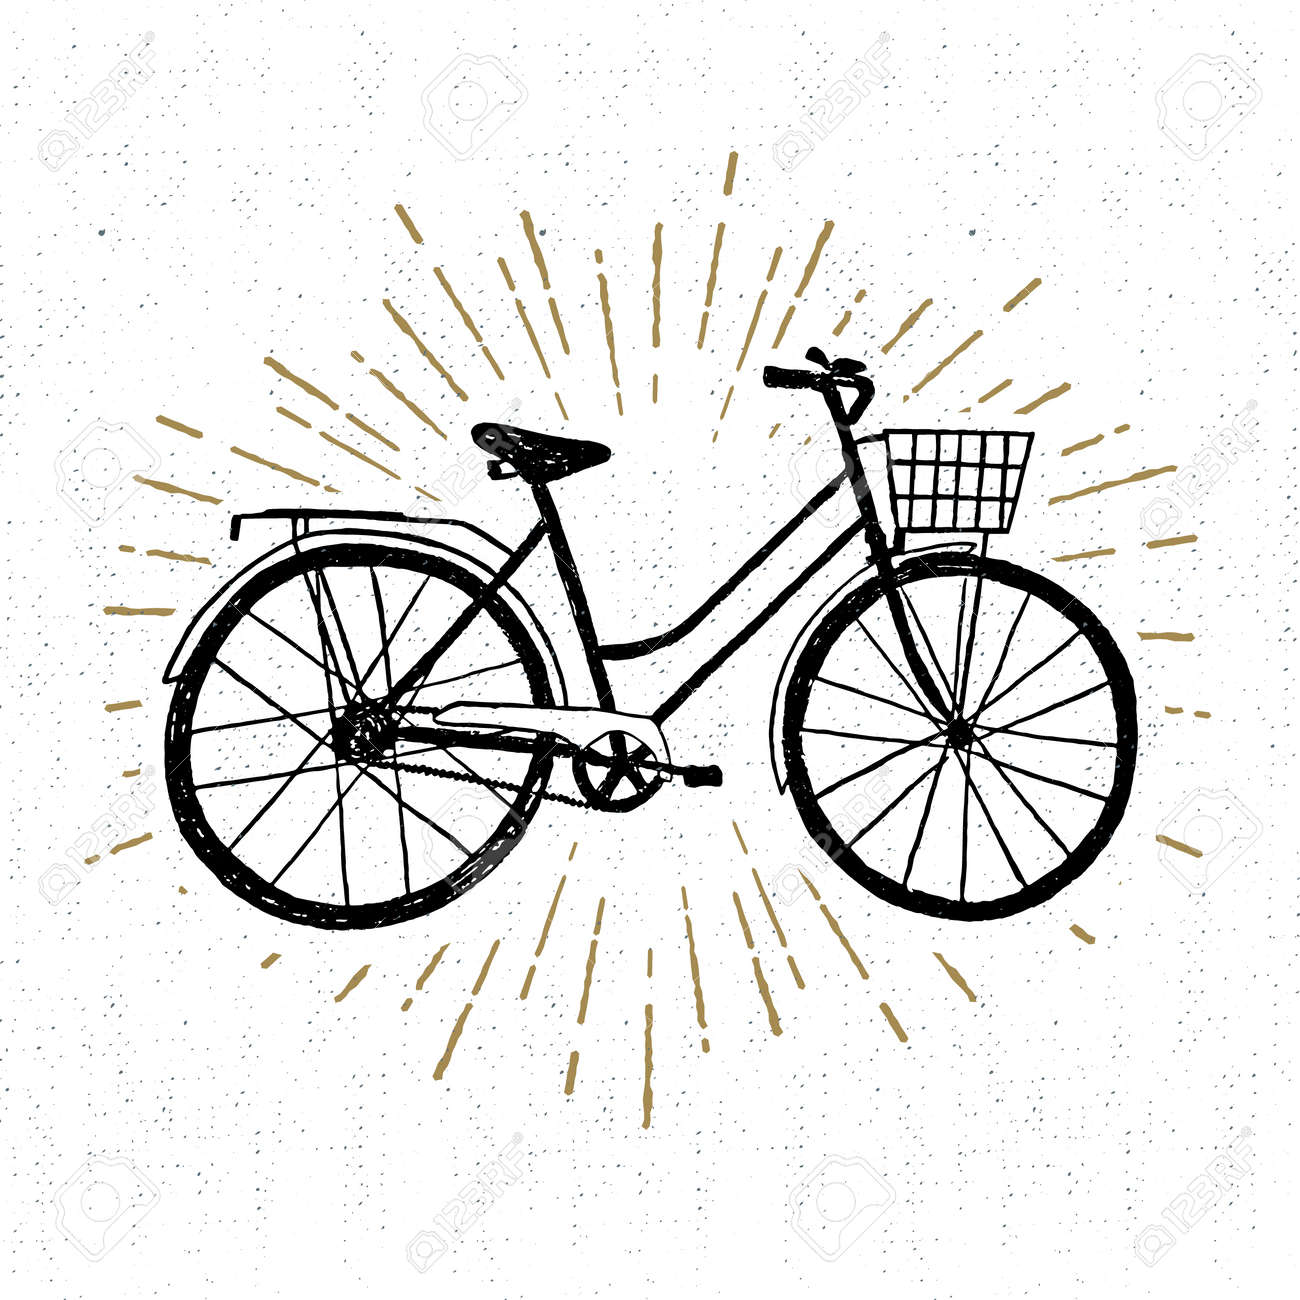 Hand drawn vintage icon with bicycle vector illustration. - 53285692